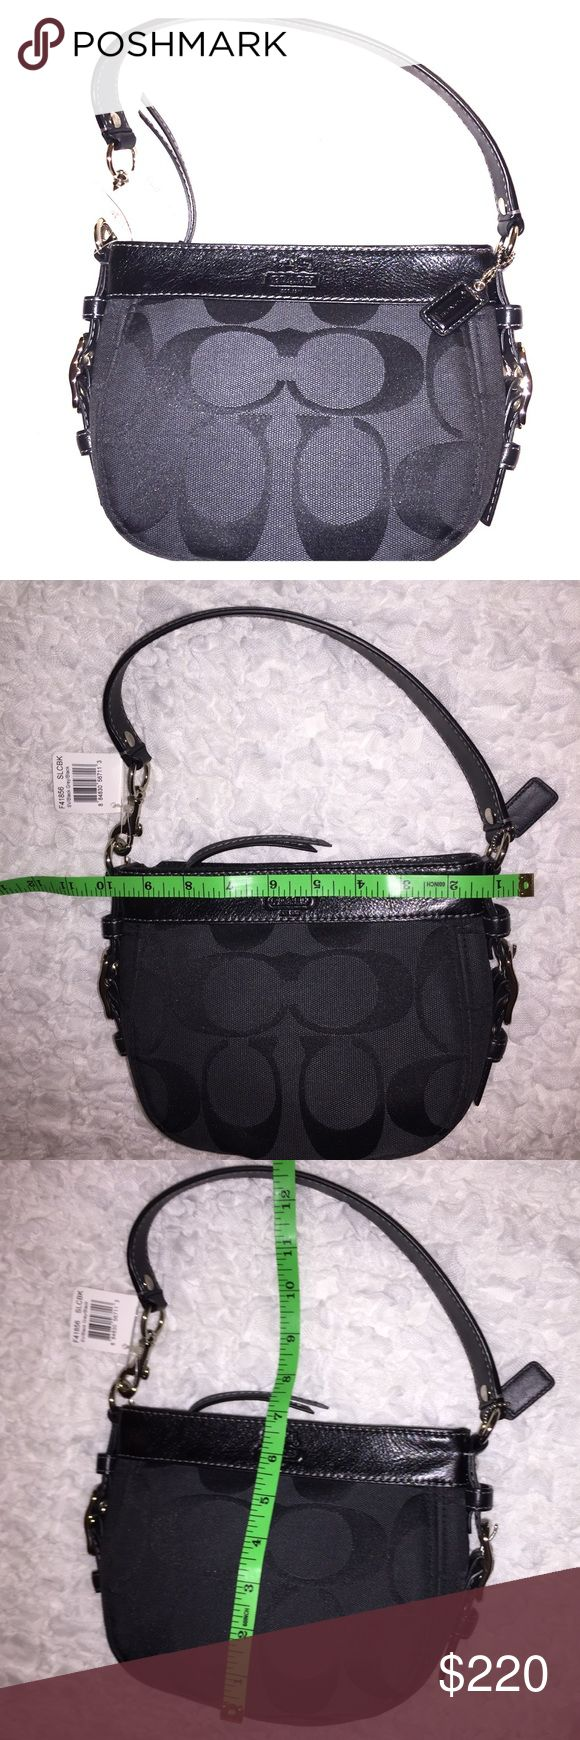 NEW! NWT Authentic Little Black Coach Purse Bag This is super cute! I think it's literally 10 years old but still brand new!! Zero flaws! It's just been sitting in my closet all these years and figured I'd sell it. Color is dark gray and black. Style name is Zoe based on what it says on the tag. 100% Authentic Coach Purse. Brand new with tags! I have another Coach purse and some key chains I'll be listing as well before the Holidays. Excellent gift idea for you or someone else. I'll lower…